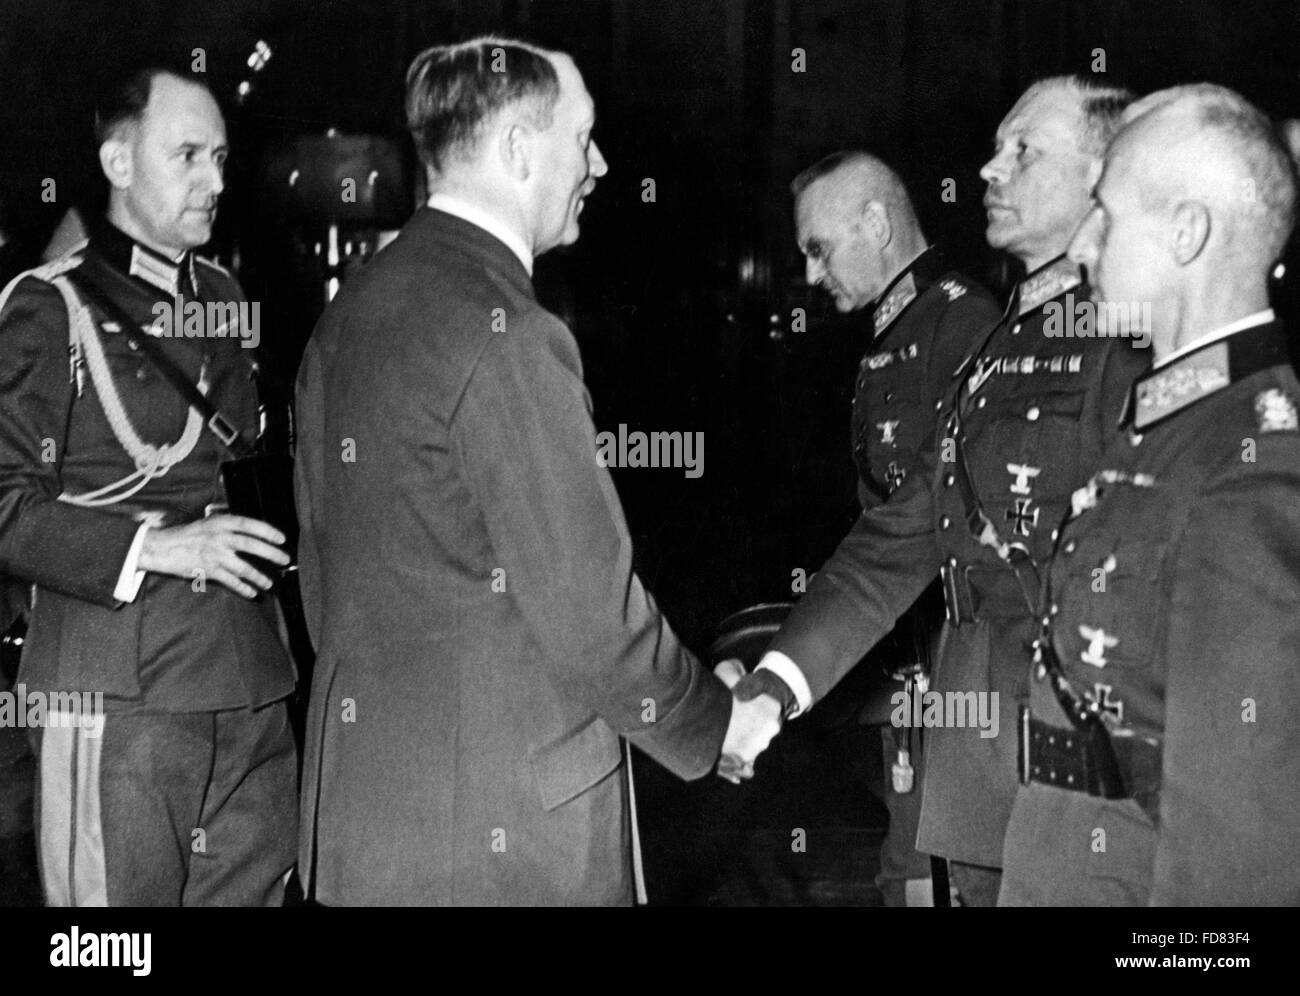 Adolf Hitler awards the generals in charge of the Poland campaign, 1939 - Stock Image